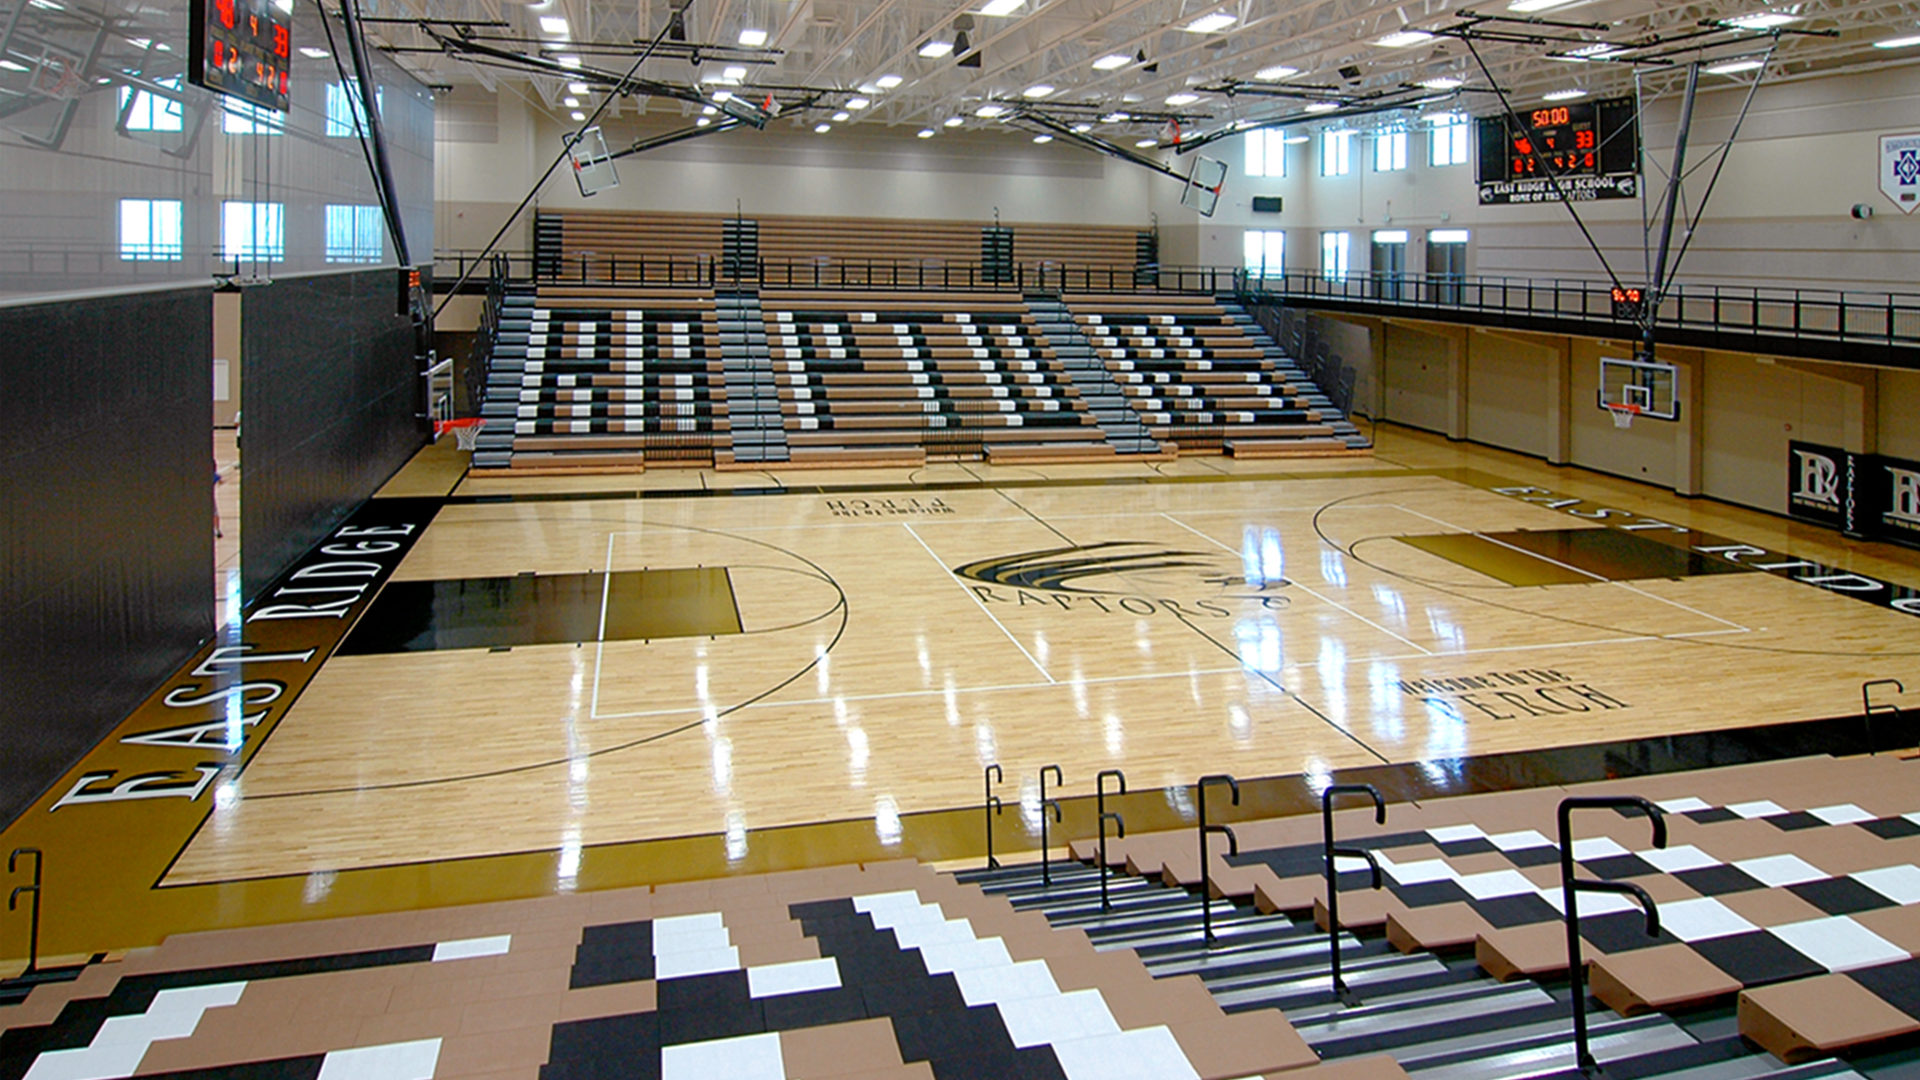 East Ridge High School Multi-Court Gymnasium with Second Story Walking Track